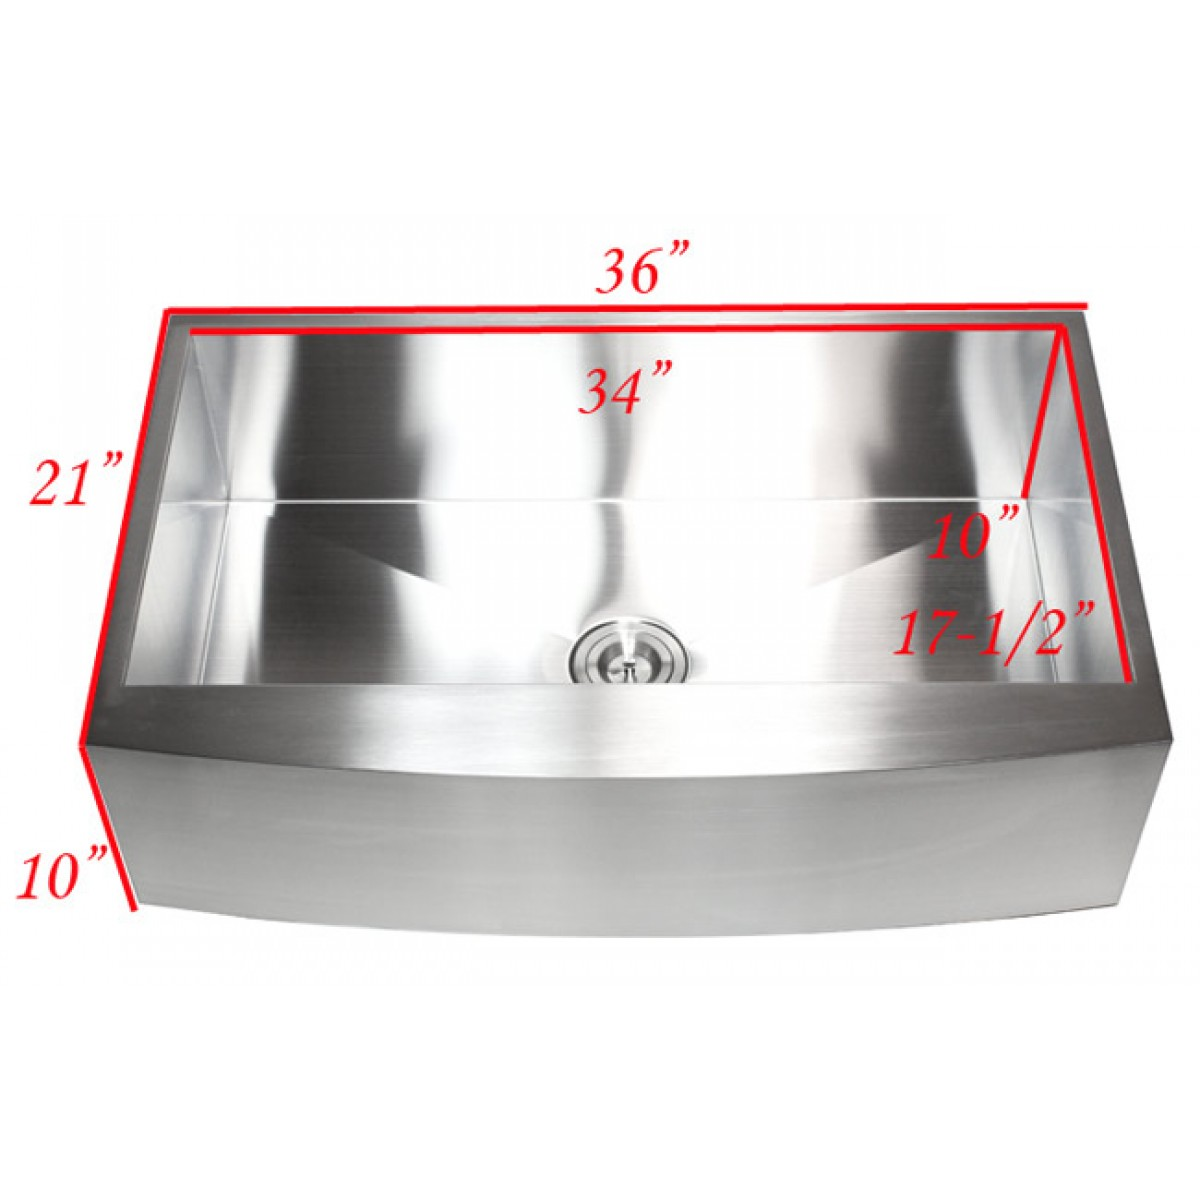 28 stainless steel apron sink reviews 32 inch stainless ste